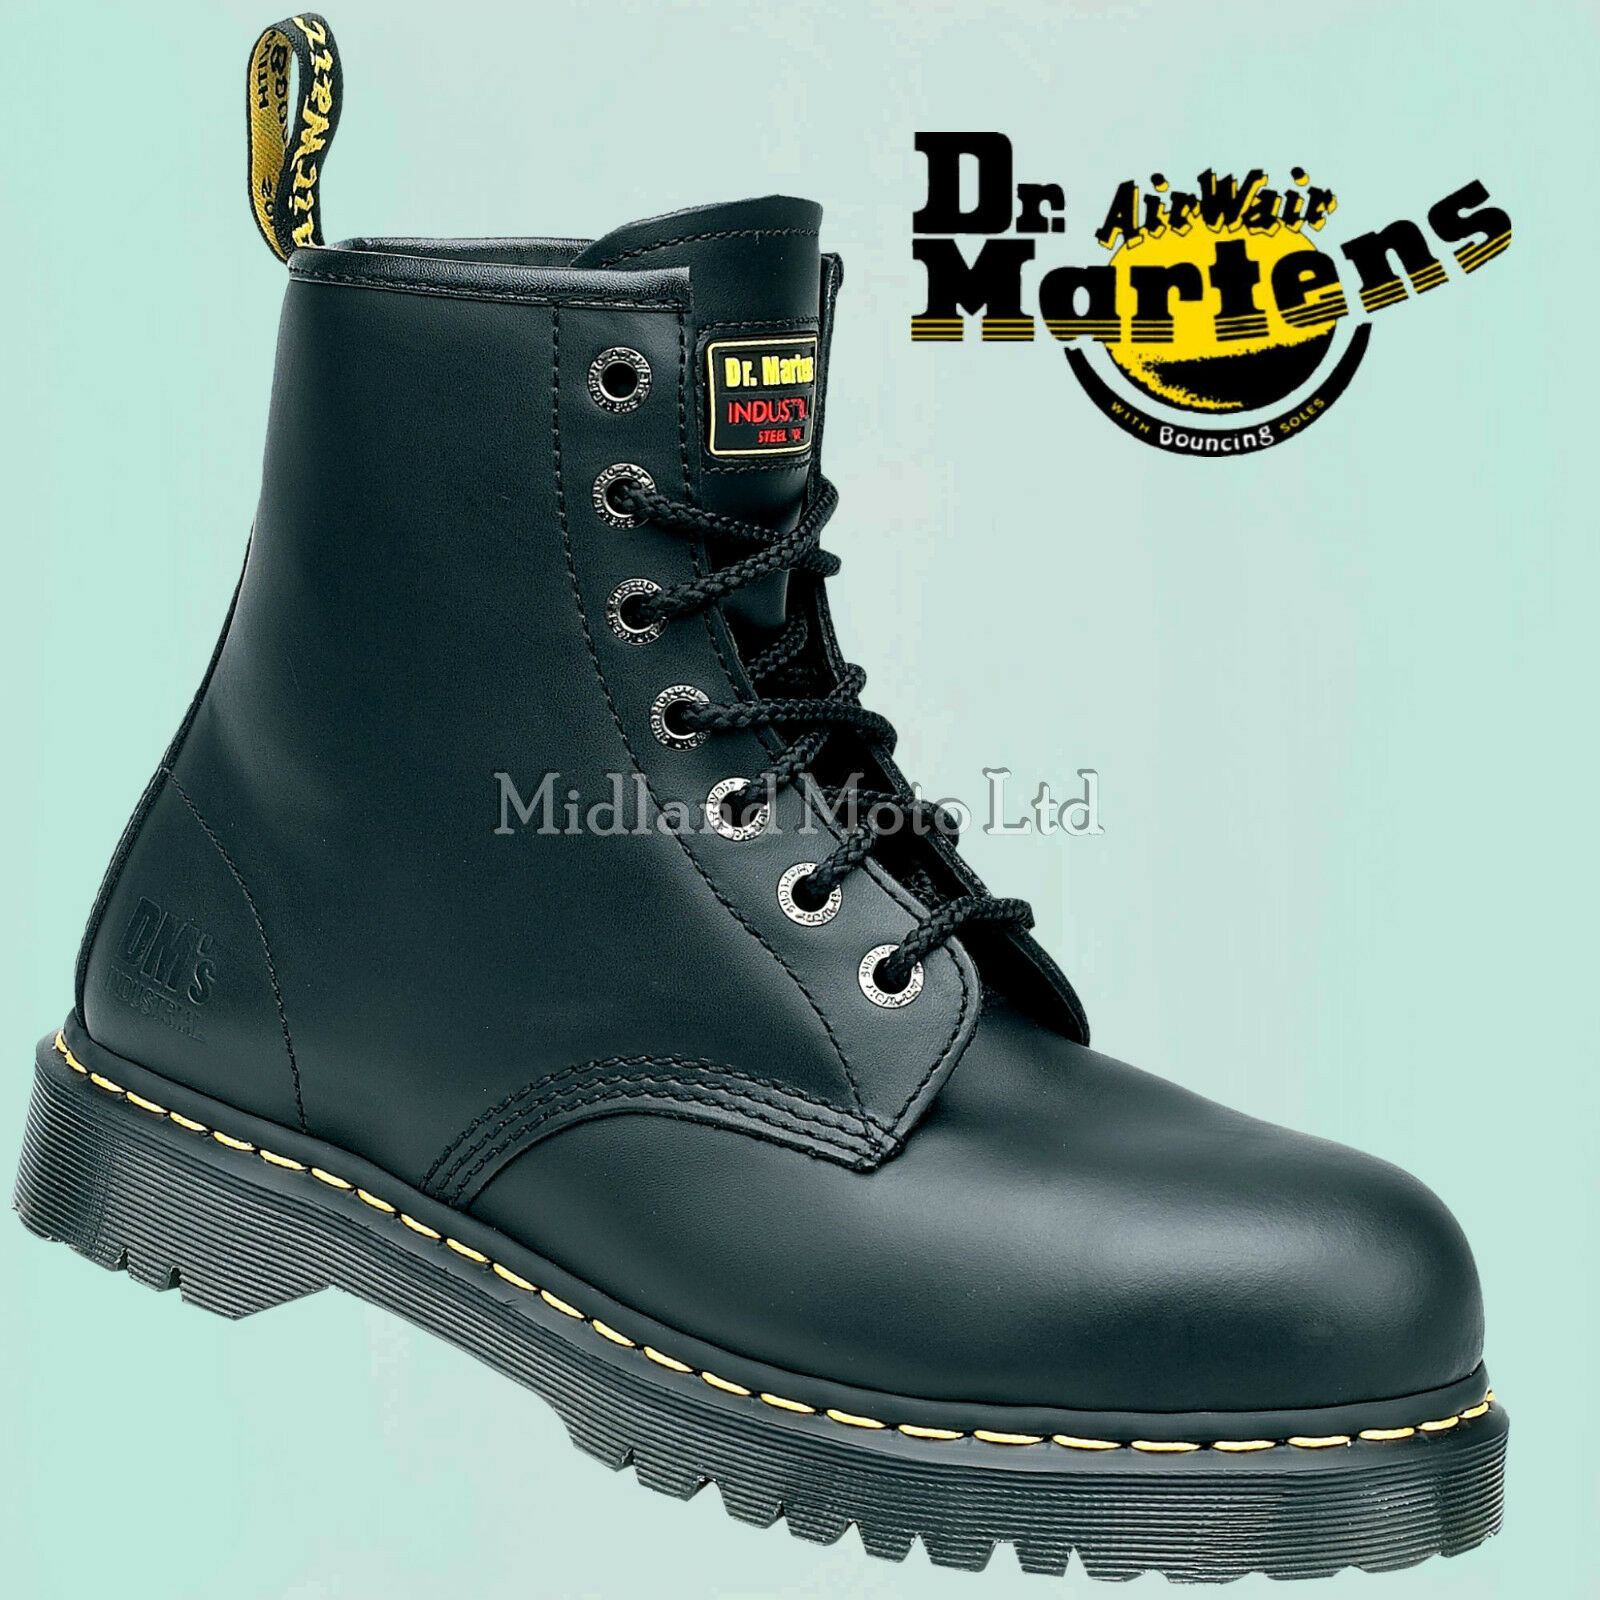 53f58050dac Dr. Martens Icon AirWair Steel Toe Cap Safety Boots 7B10 Doc Martins, New  in Box